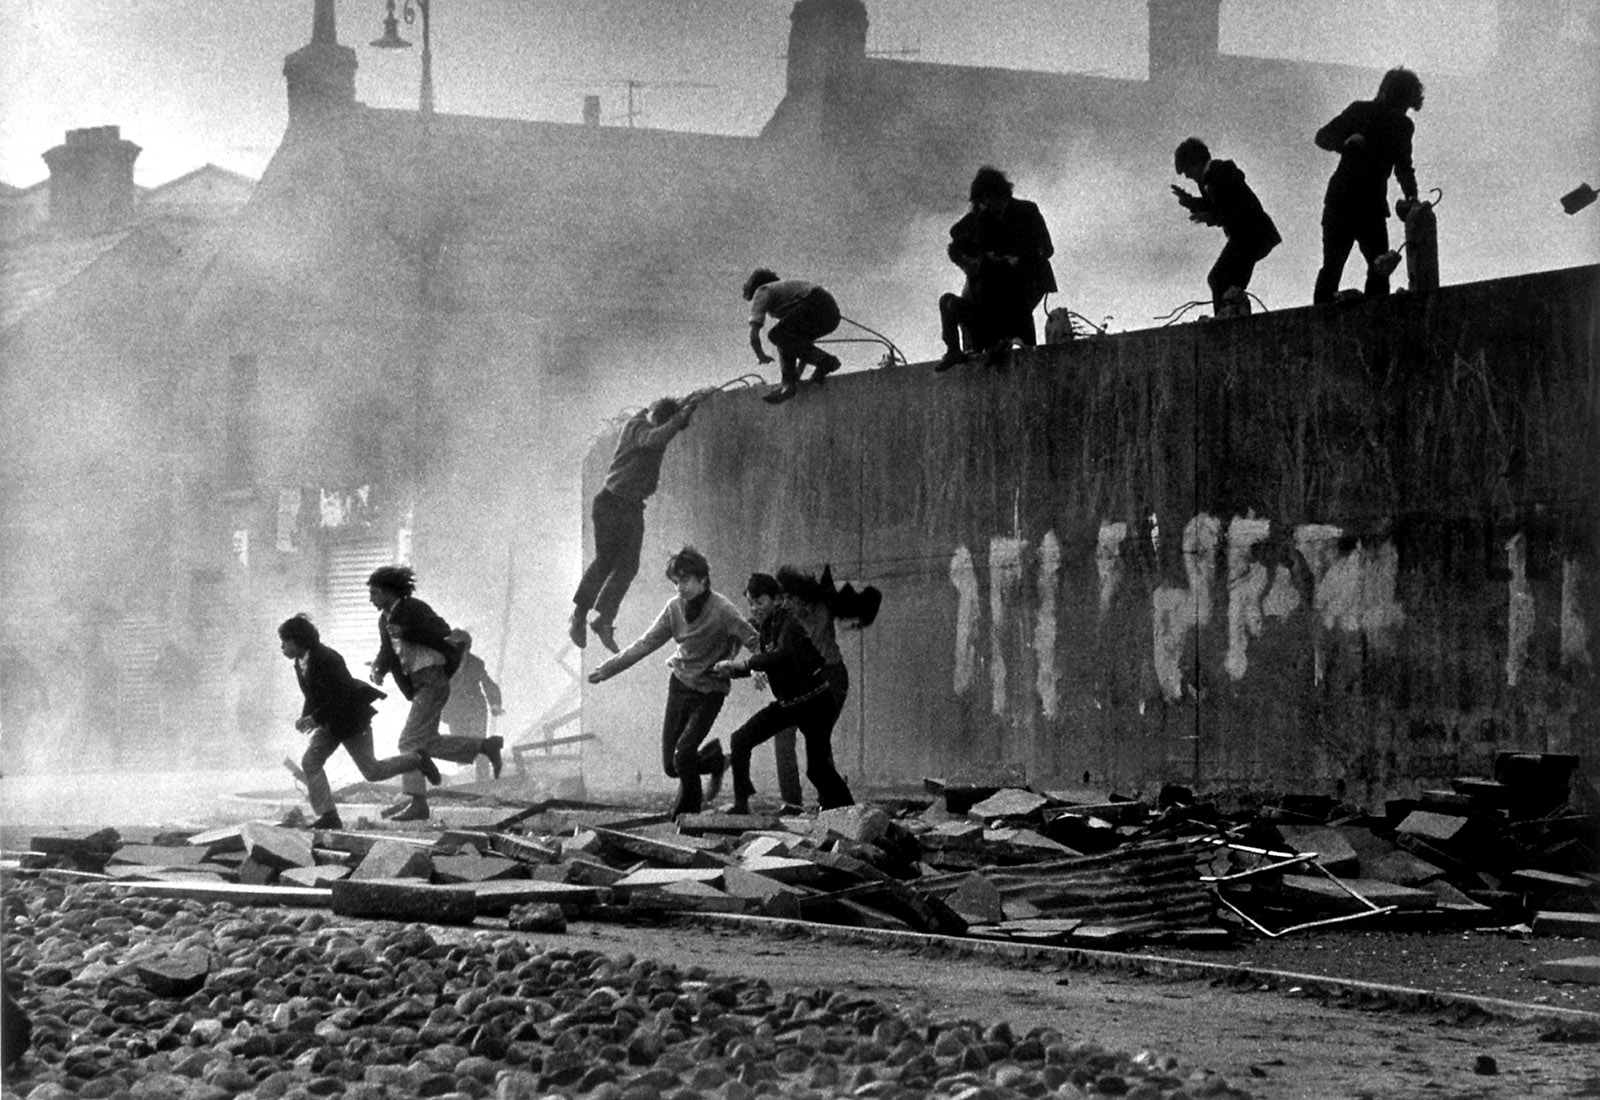 People jumping off a wall, Londonderry, Northern Ireland, 1971